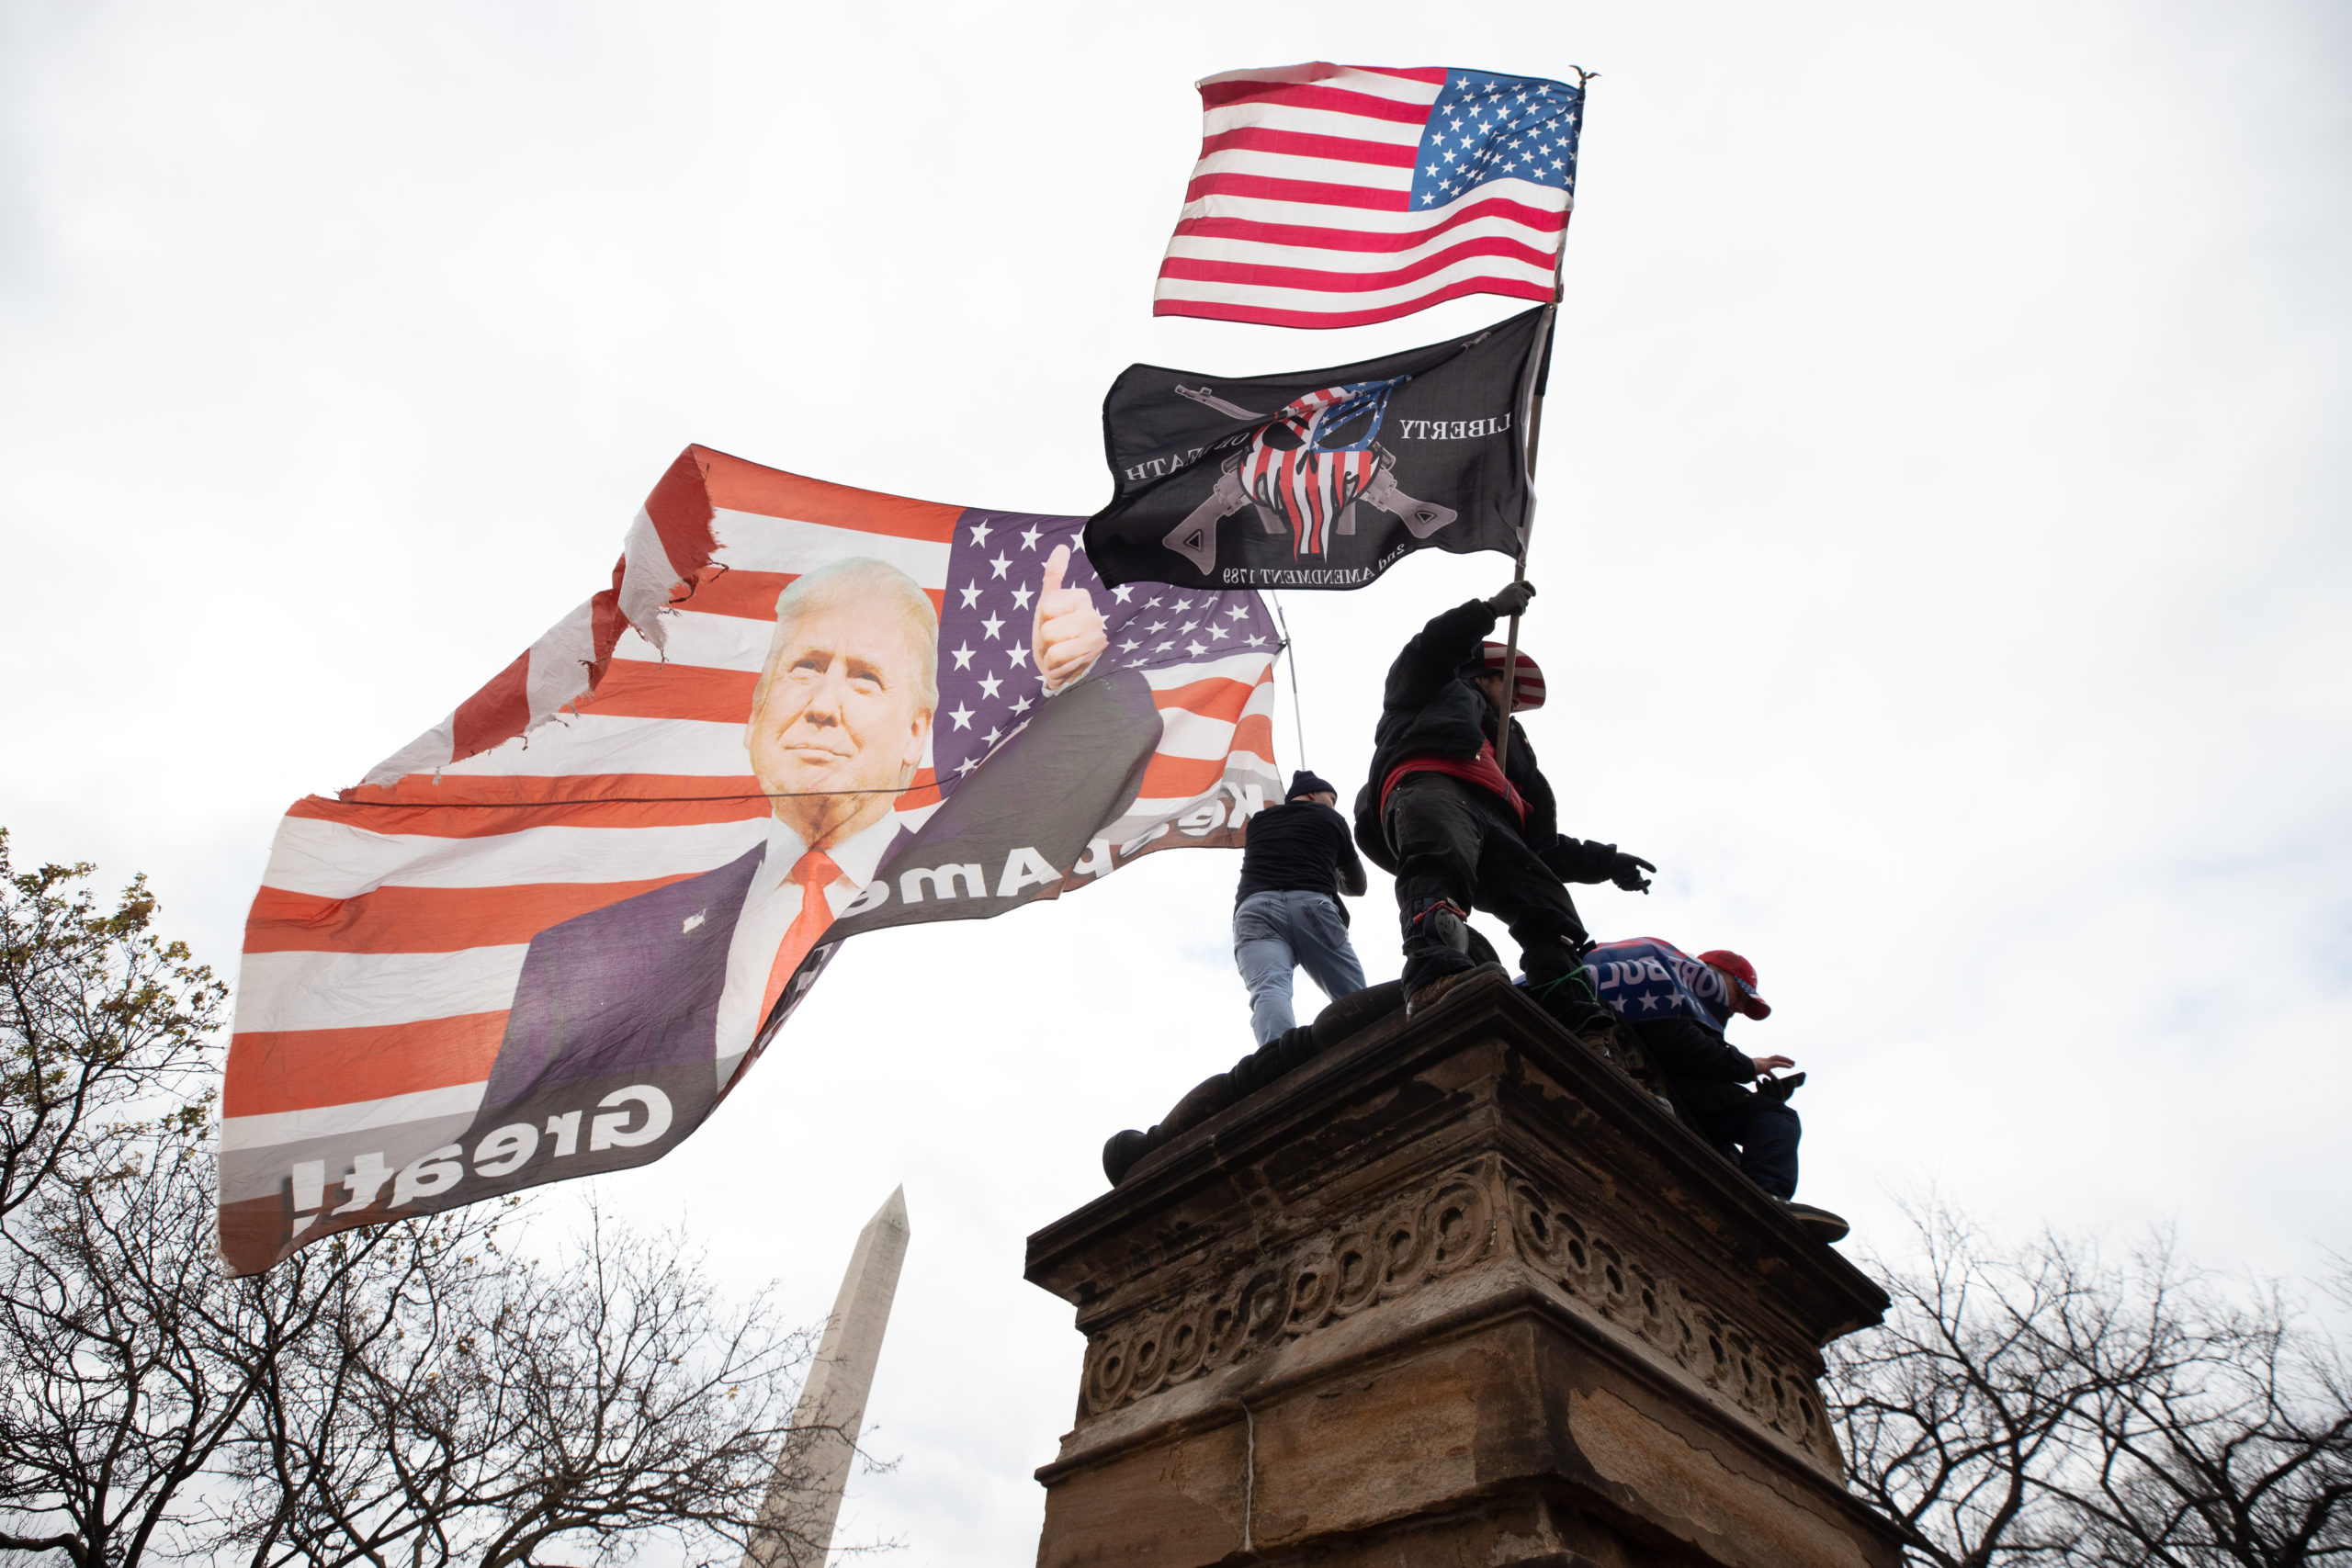 Supporters of President Donald Trump scaled various landmarks around the city attempting to get a better angle of the stage before his speech in Washington, D.C. on Jan. 6, 2021. (Kaylee Greenlee – Daily Caller News Foundation)